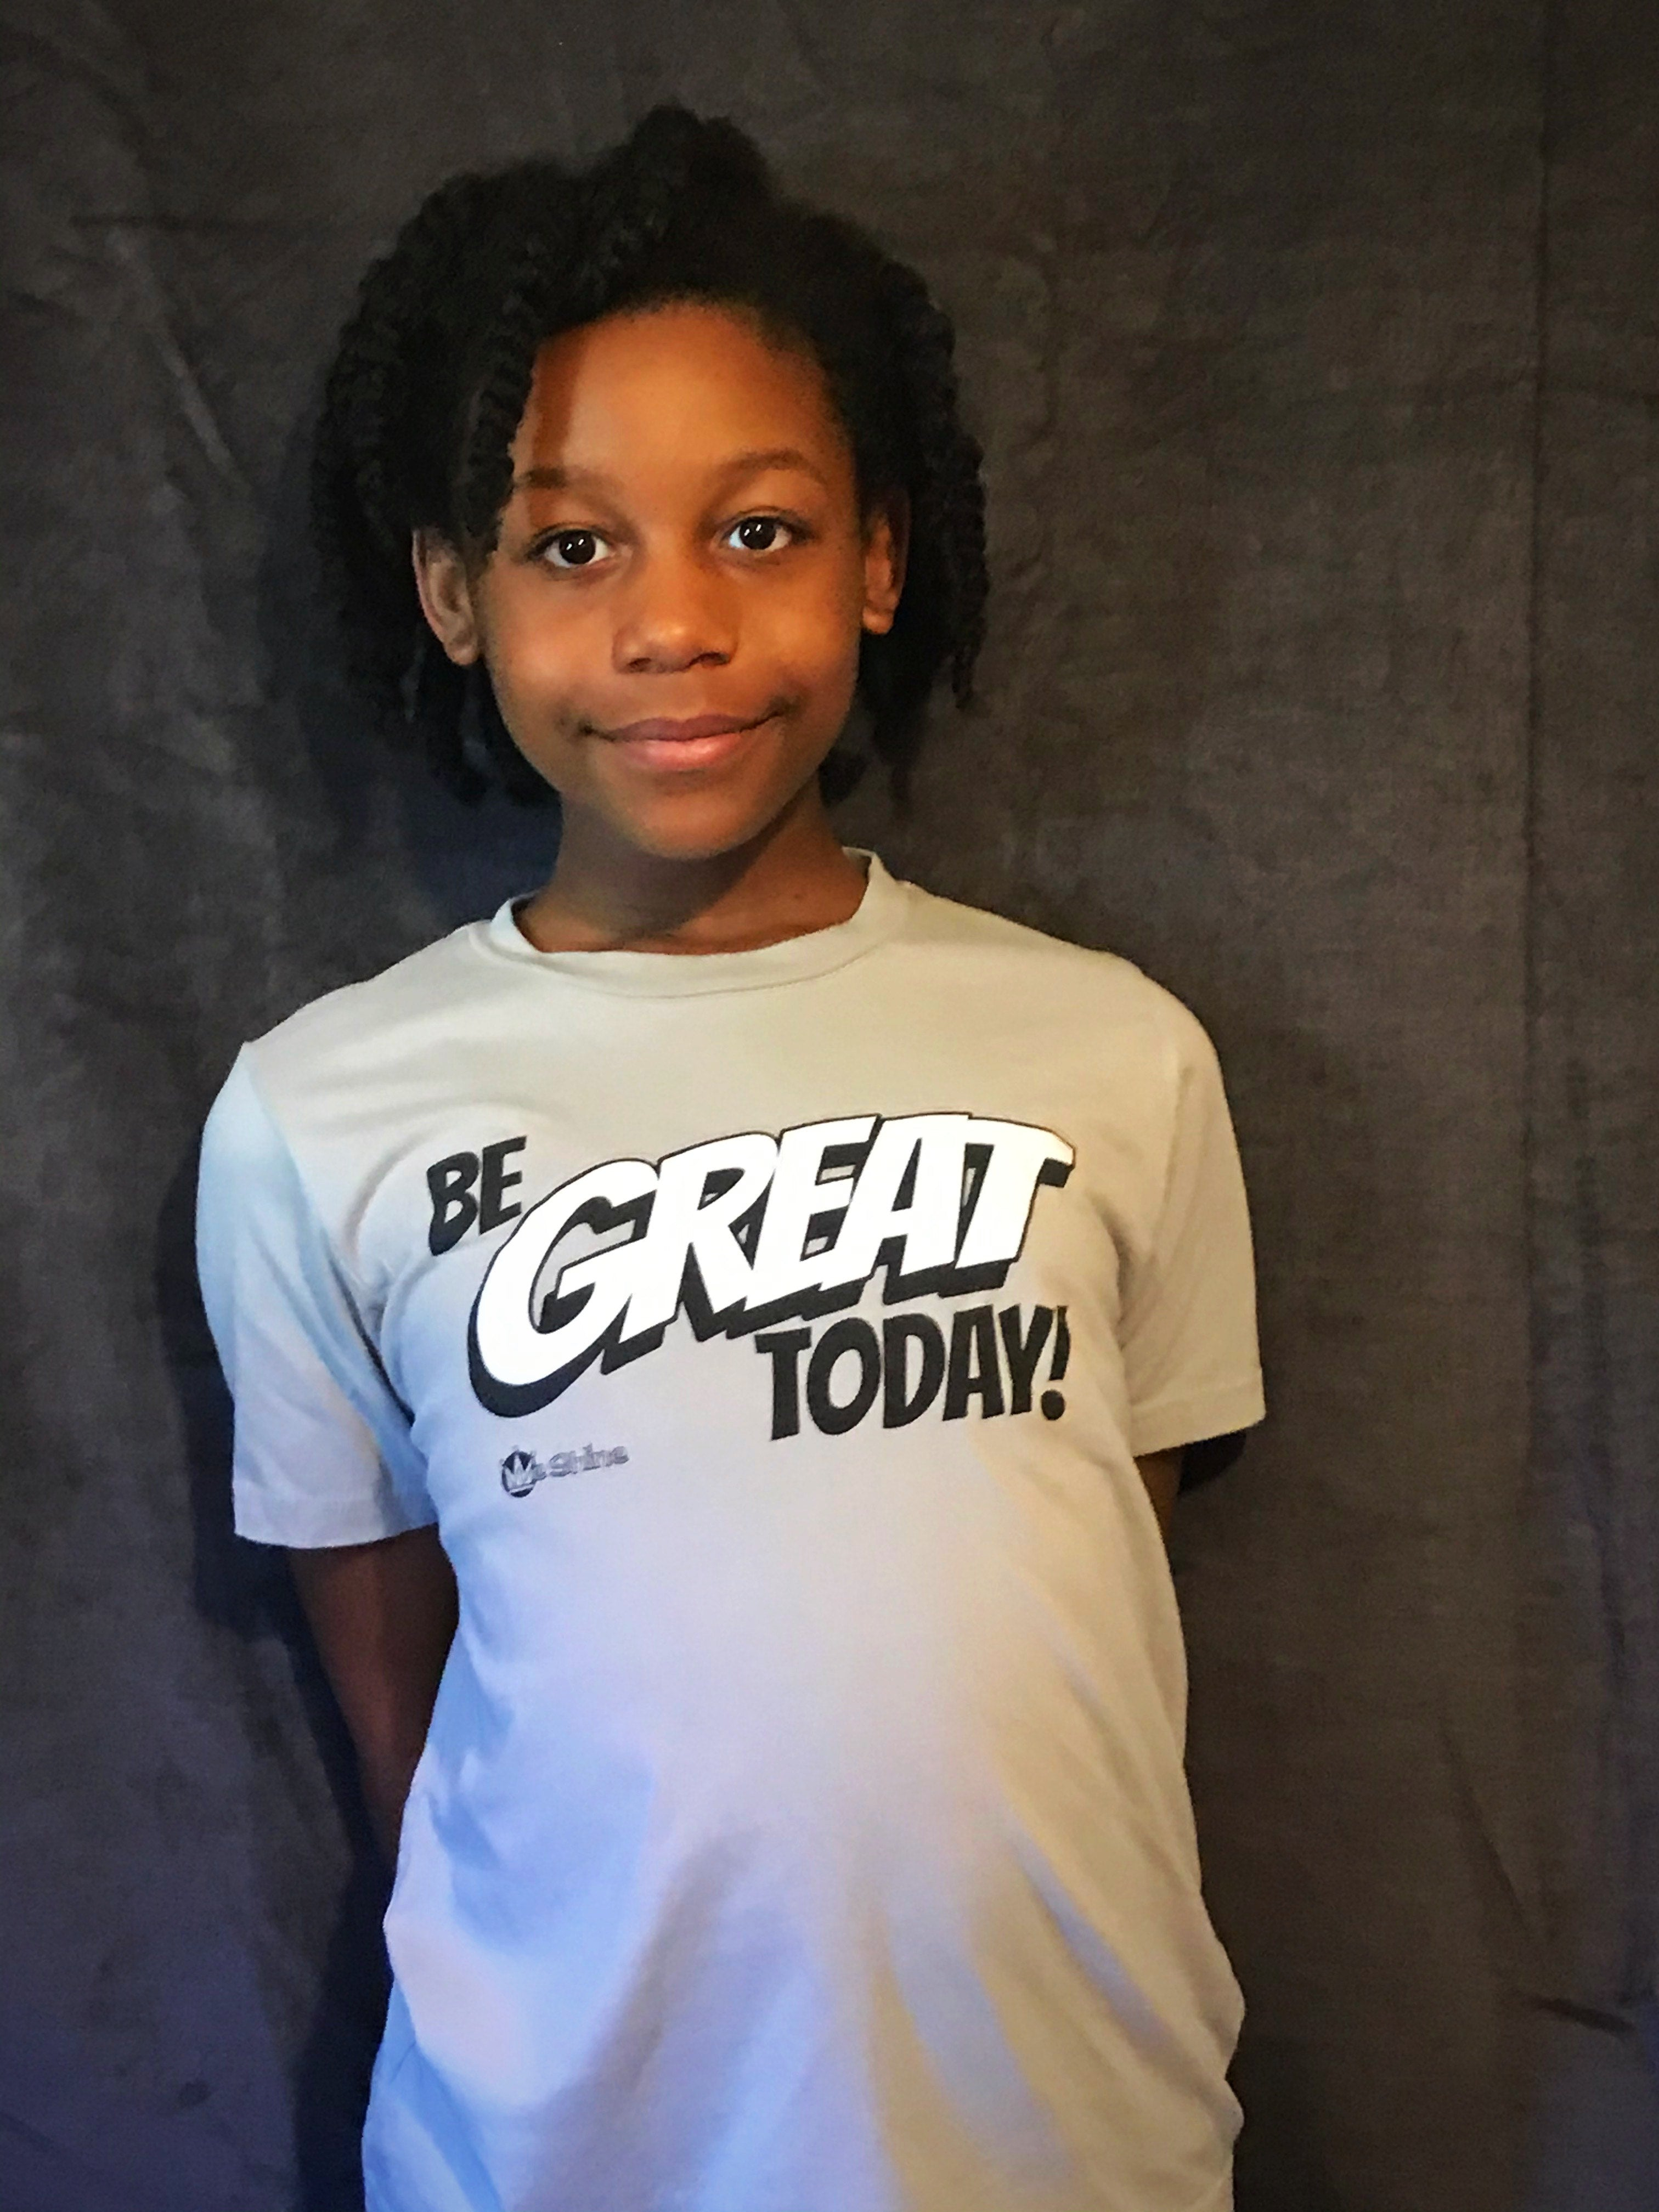 Be Great Today!  - Short Sleeve Tee